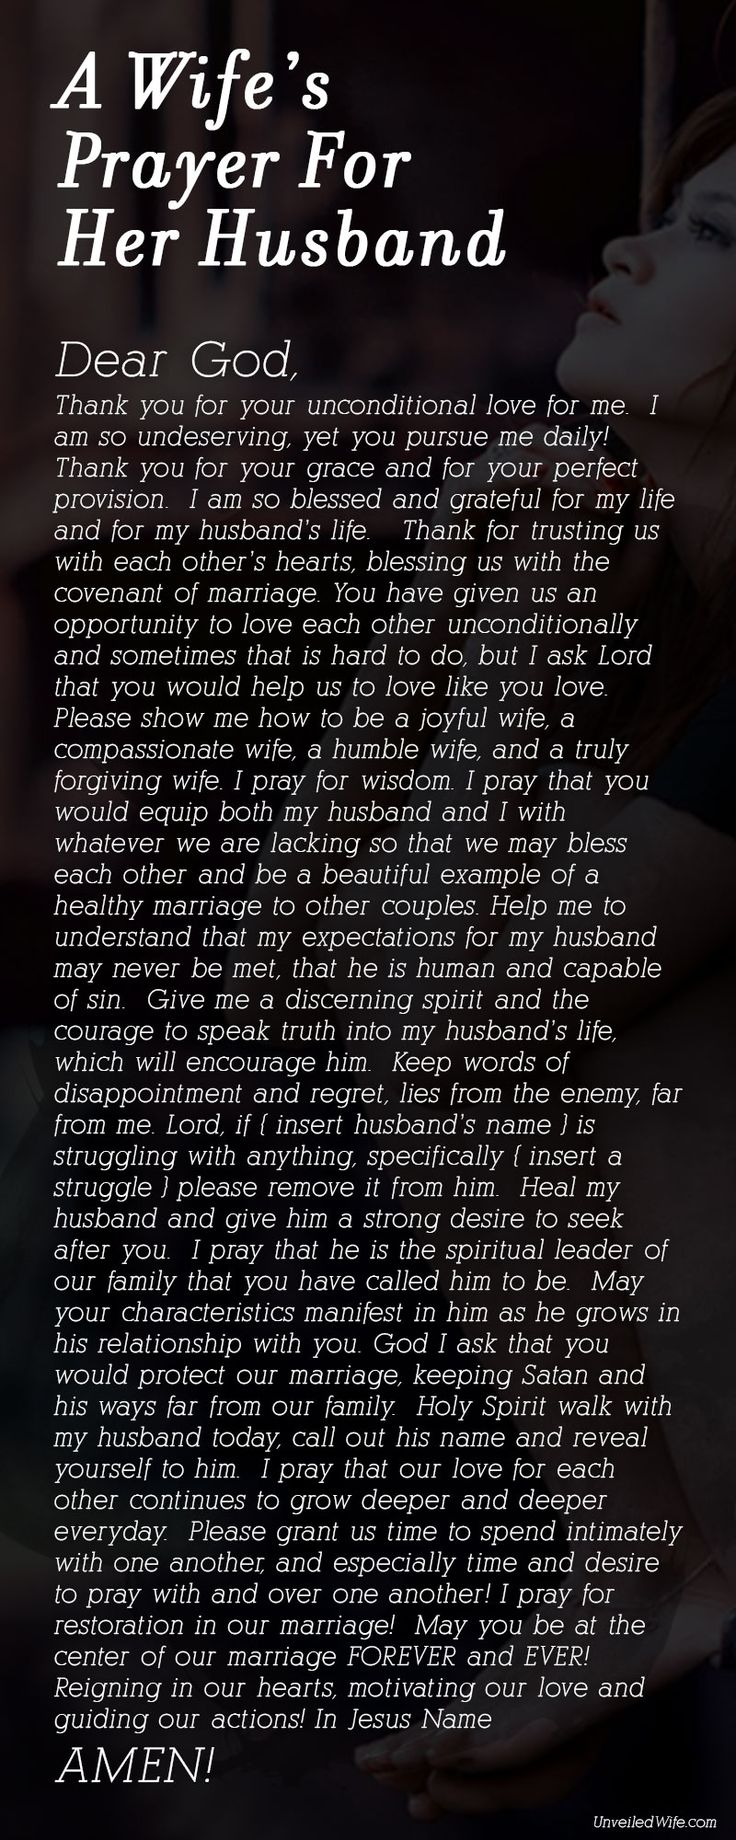 A Wife's Prayer For Her Husband Subscribe to the daily marriage prayer email here http://unveiledwife.com/a-wifes-prayer-for-her-husband/#gform_4